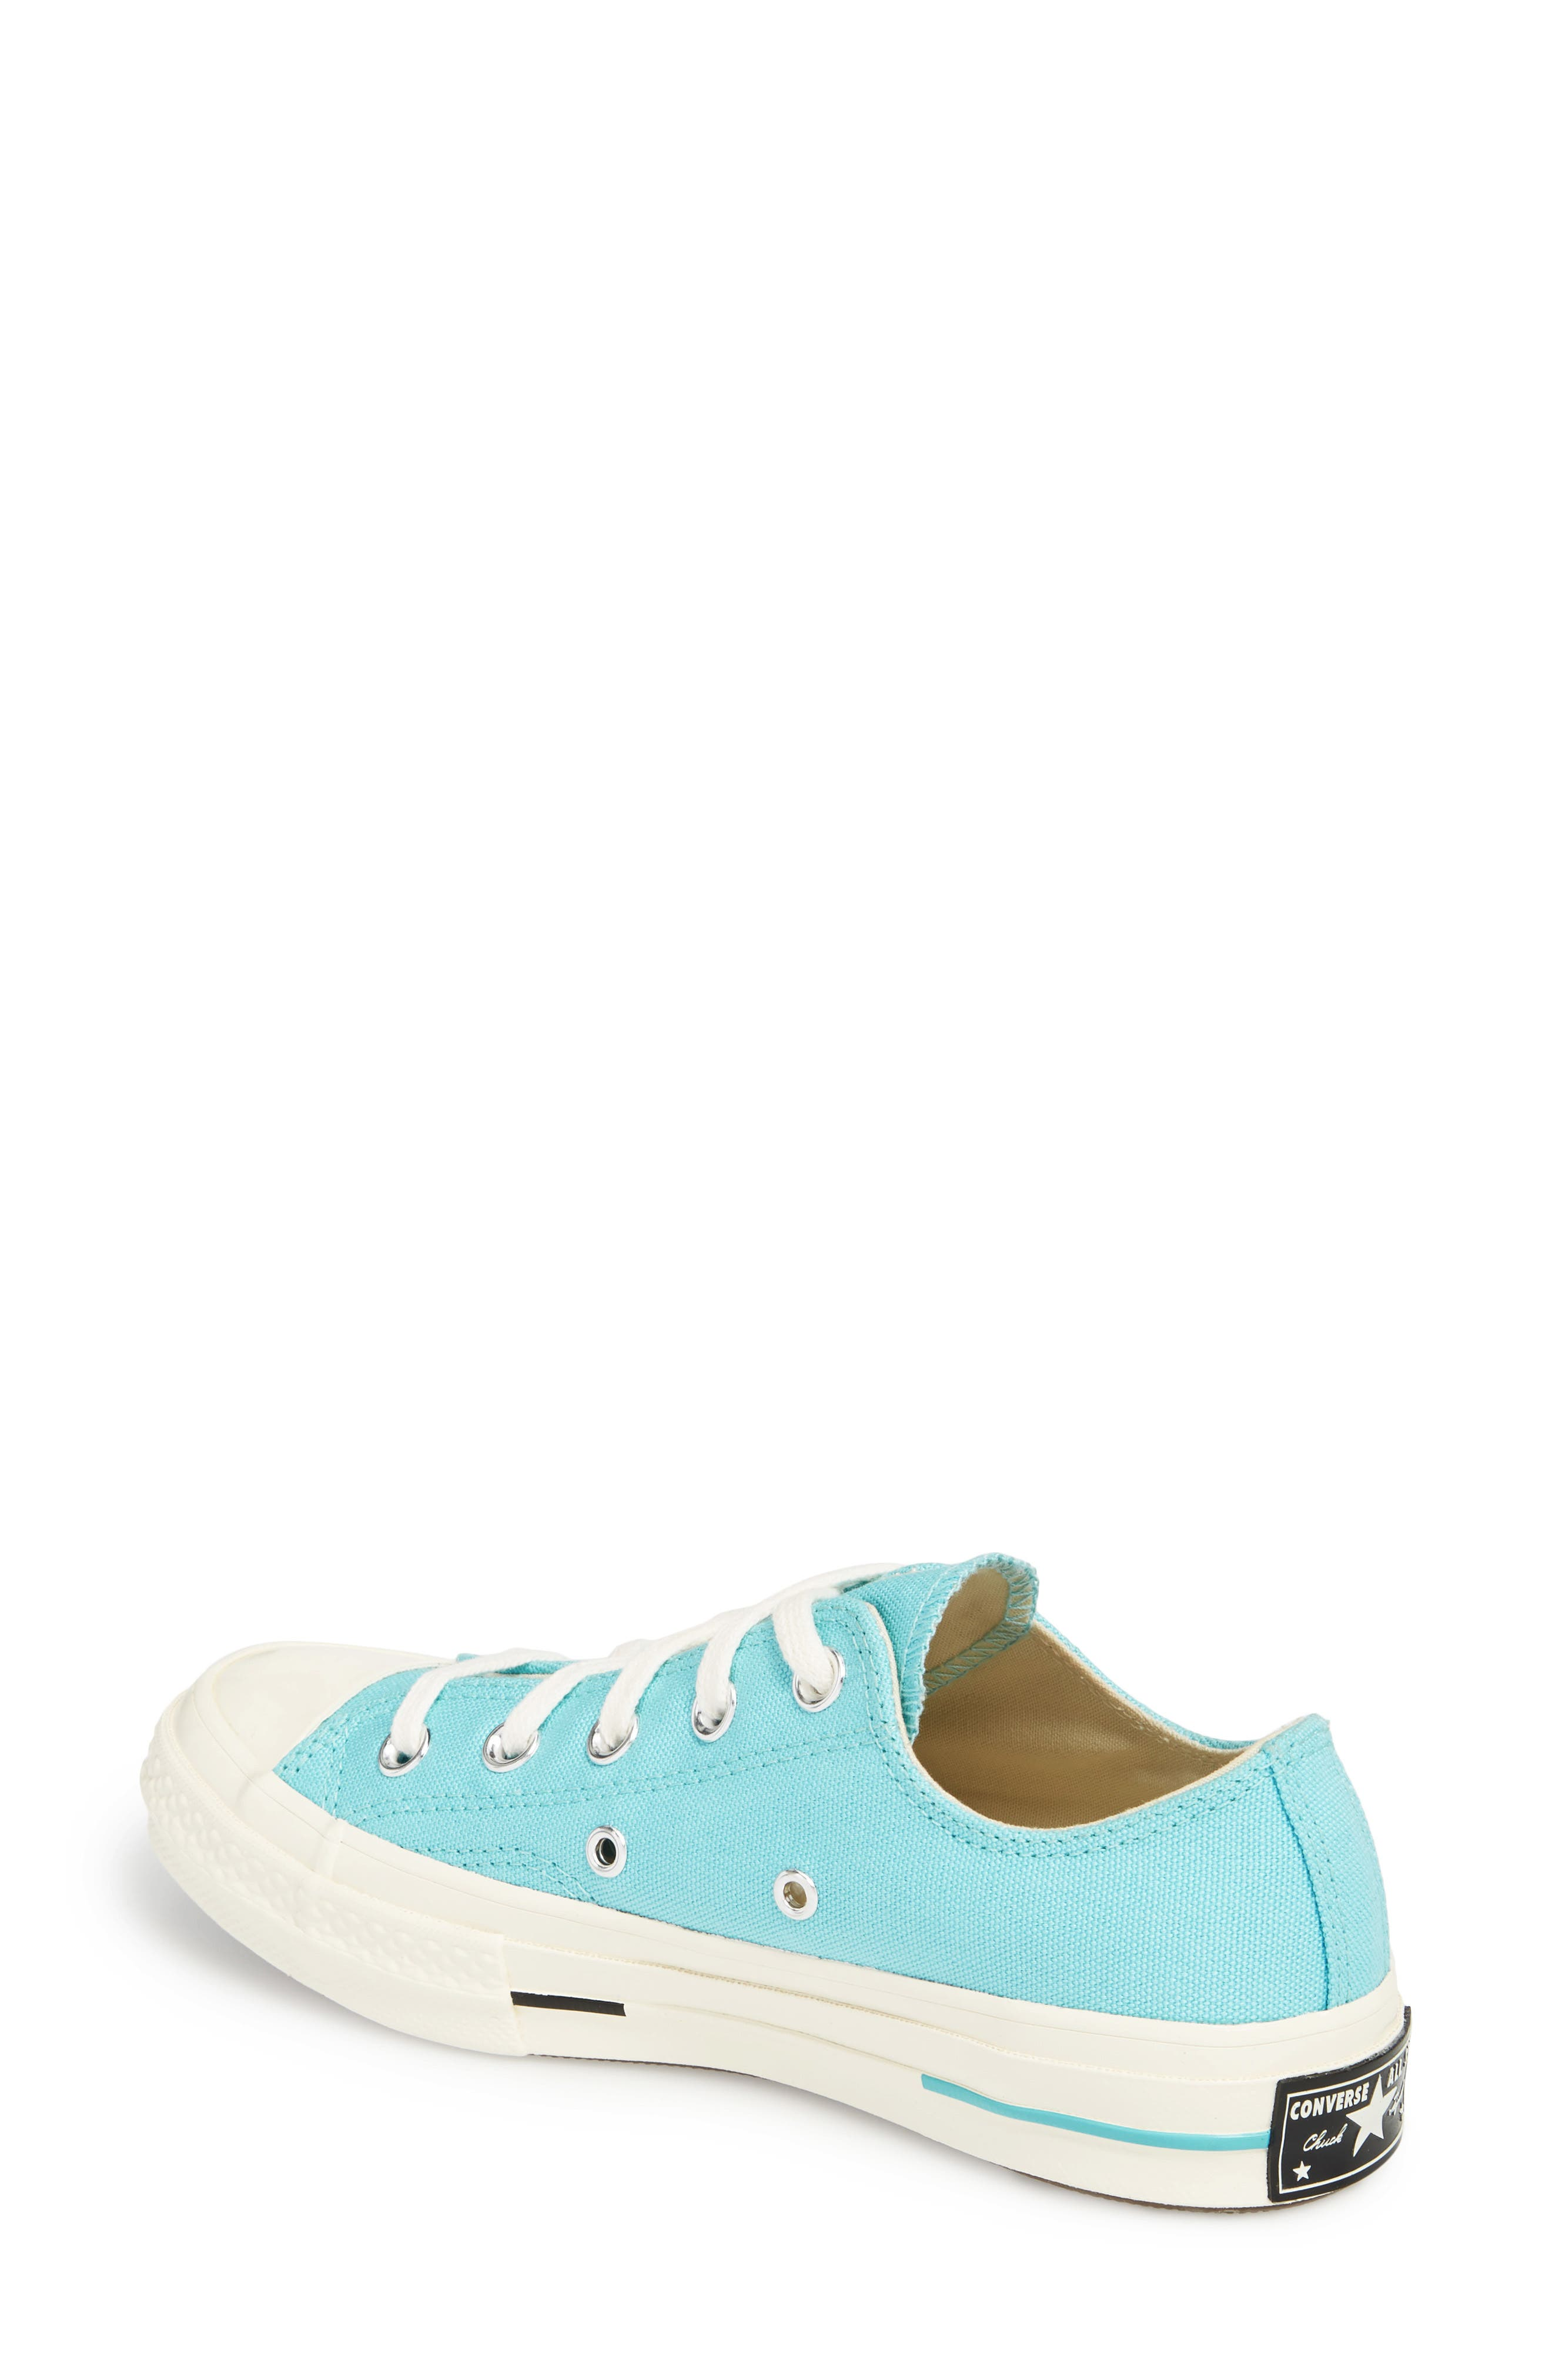 Chuck Taylor<sup>®</sup> All Star<sup>®</sup> '70s Brights Low Top Sneaker,                             Alternate thumbnail 2, color,                             440